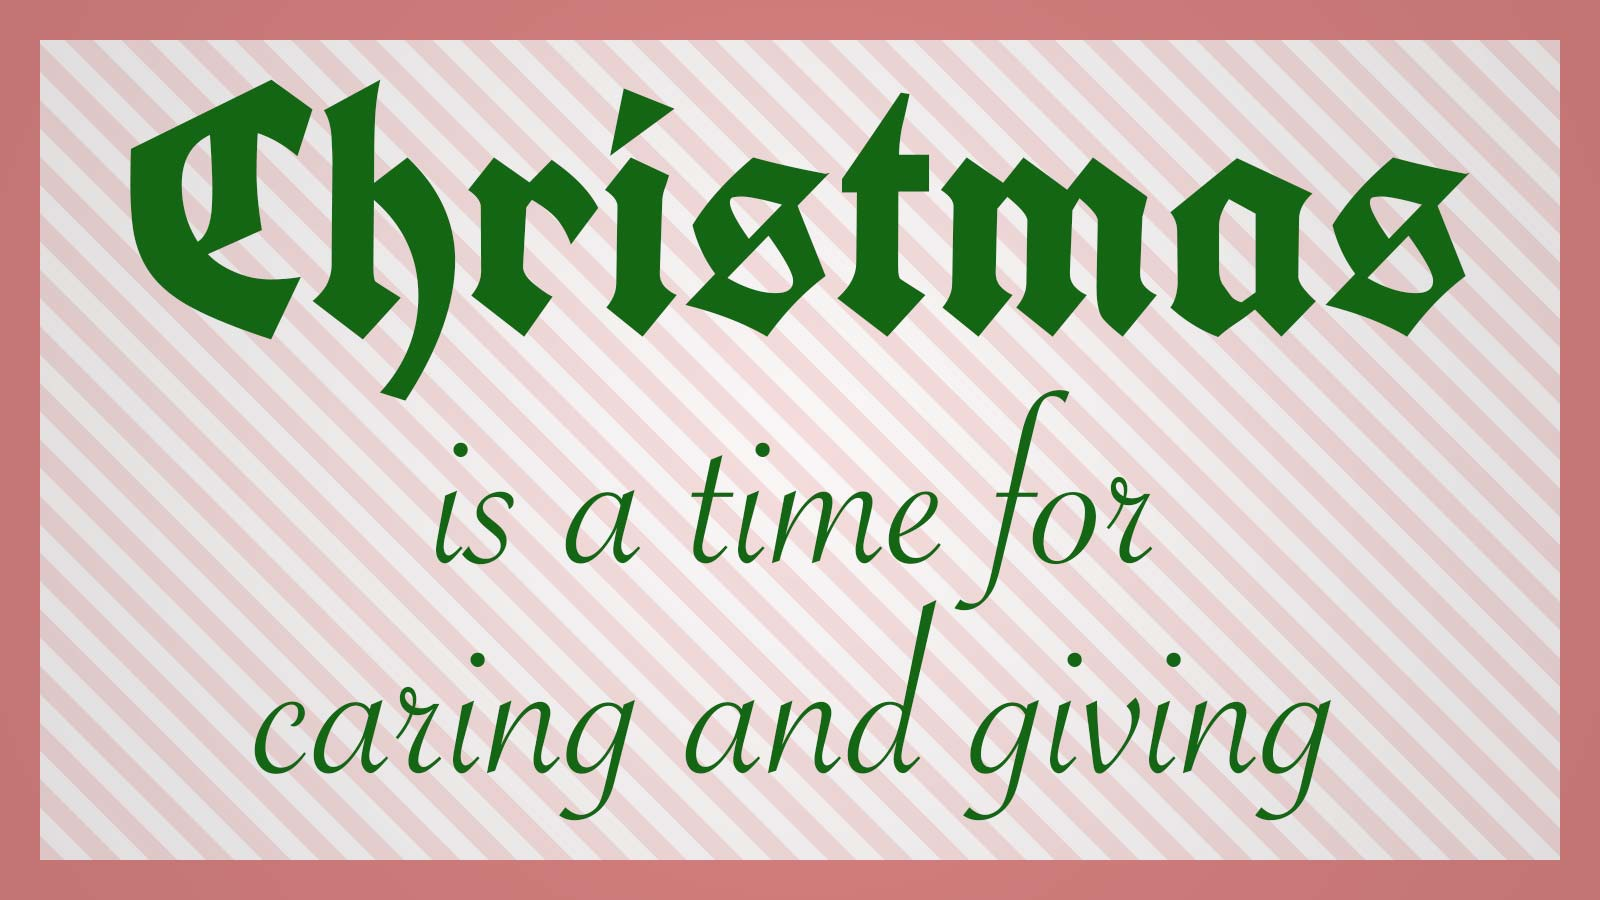 Christmas is a time for caring and giving